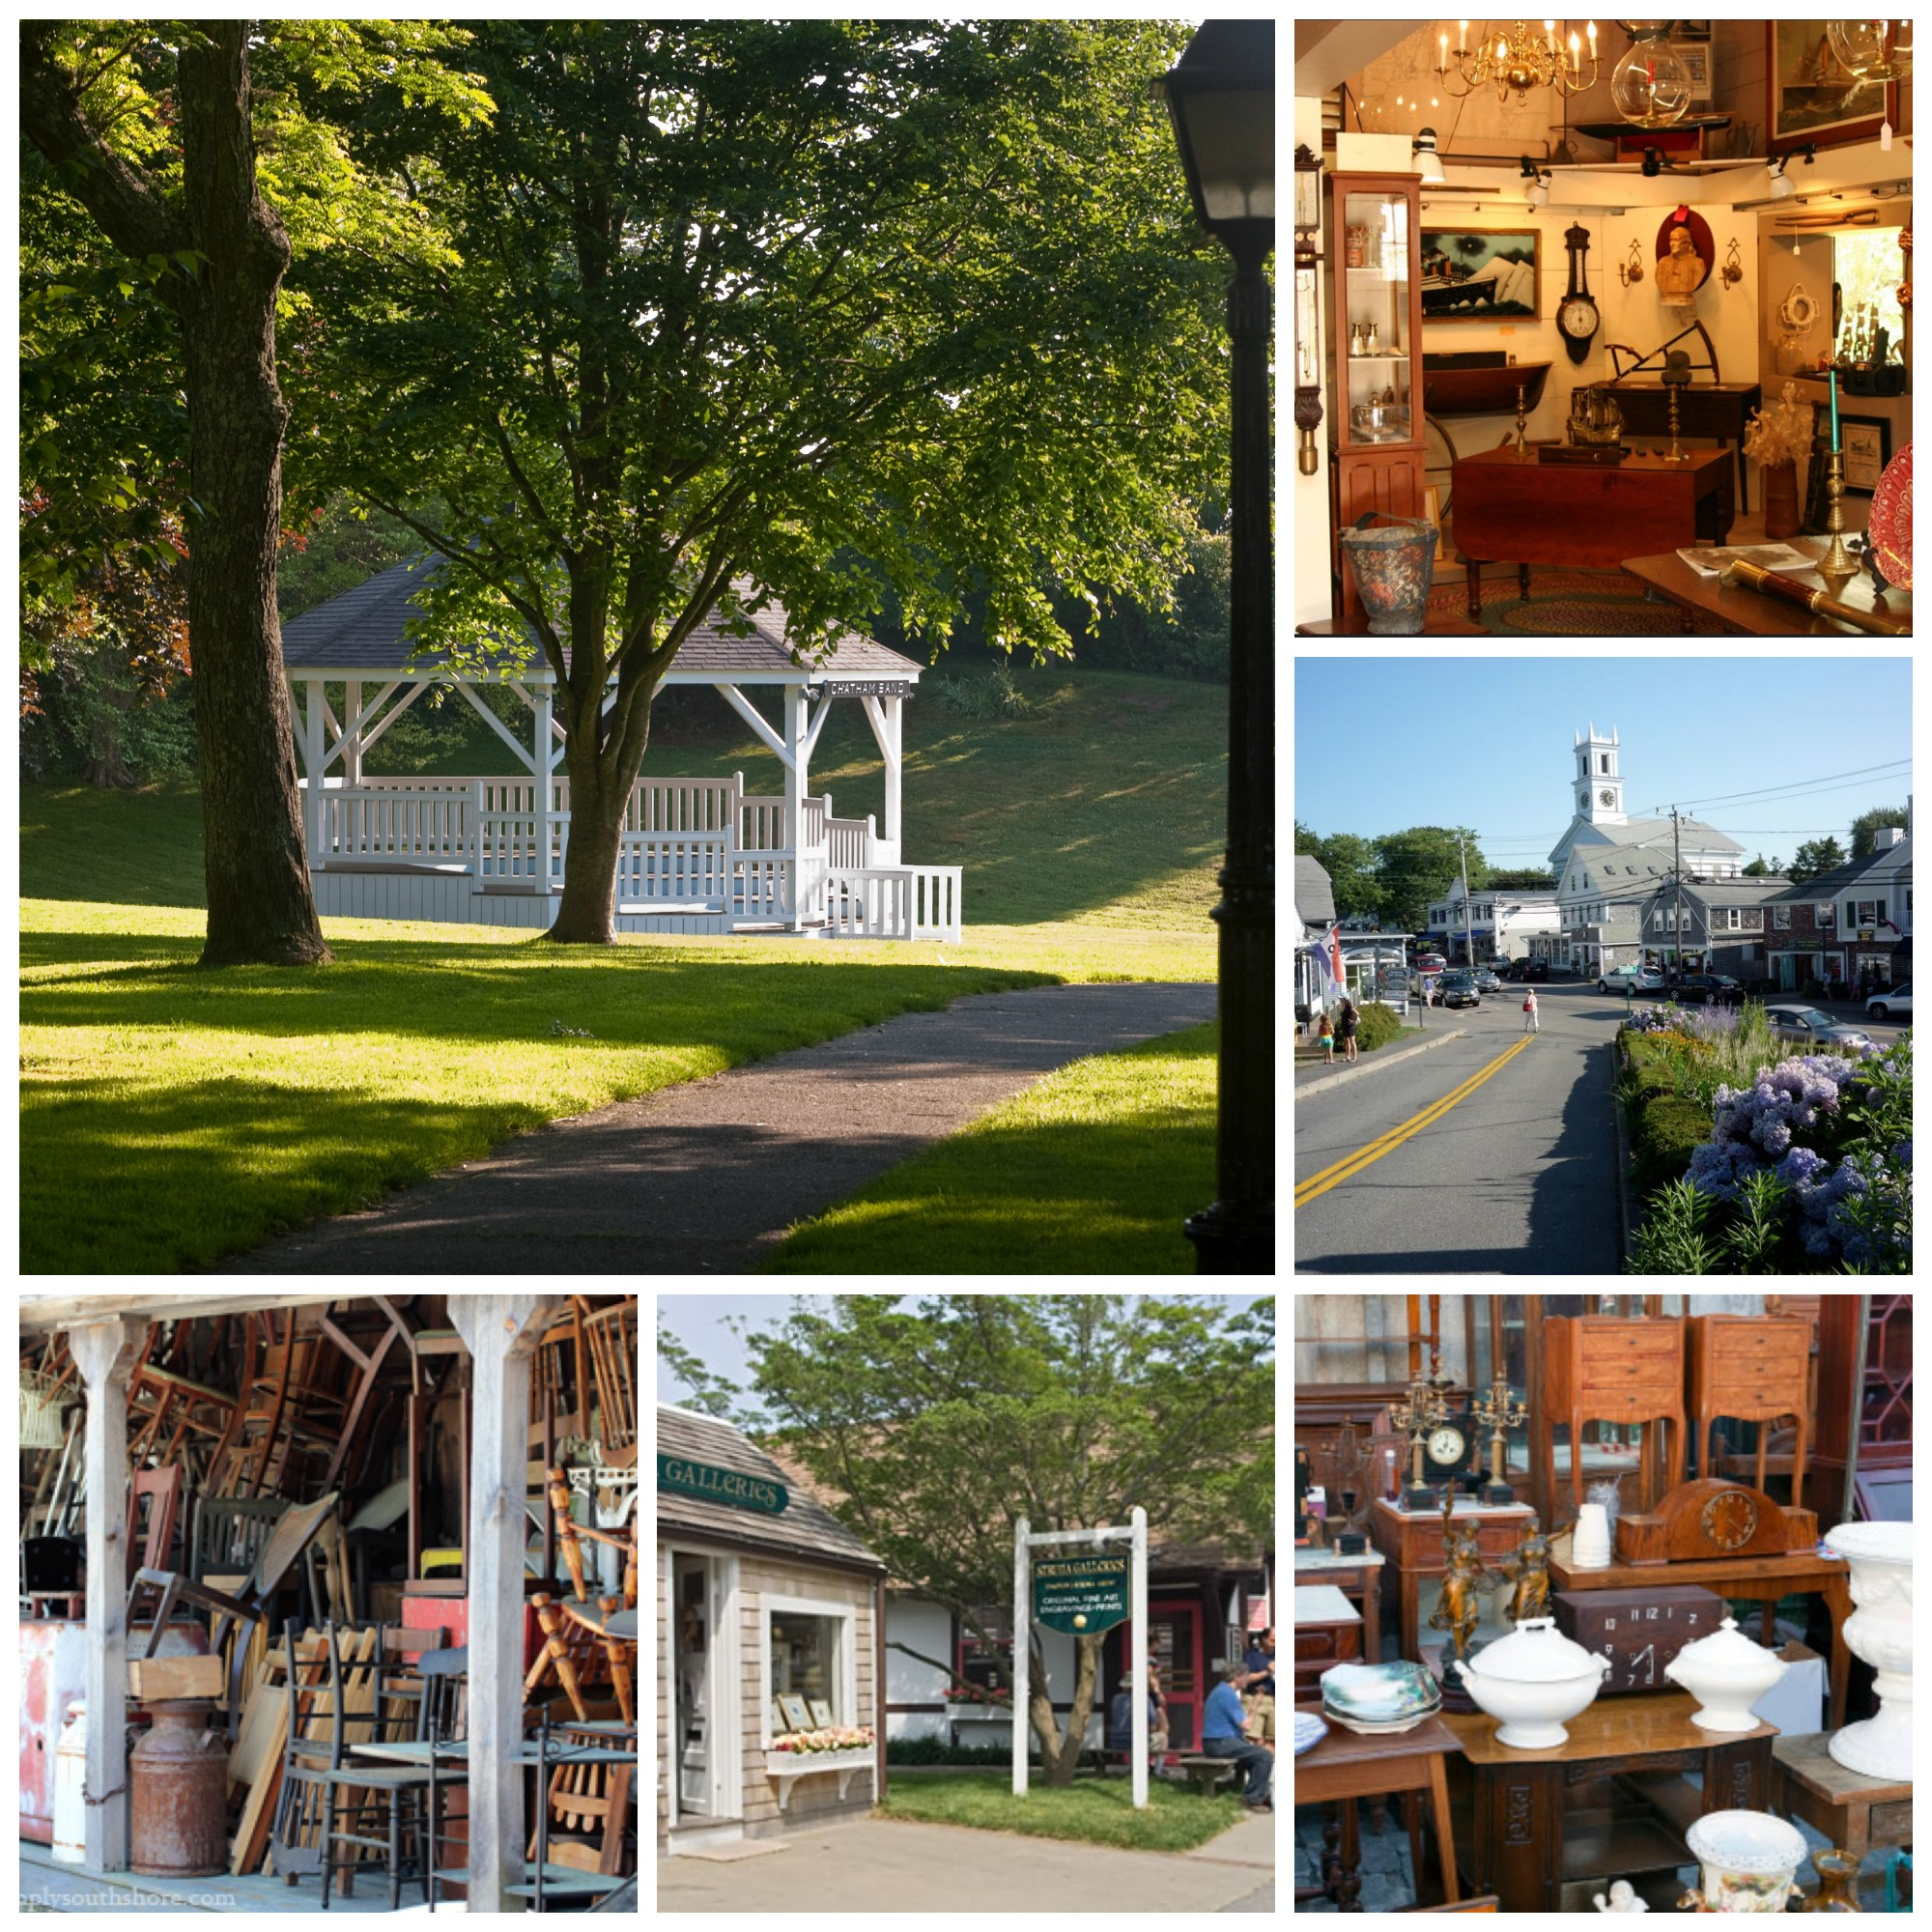 Town square gazebo and antique shops in Chatham, MA.